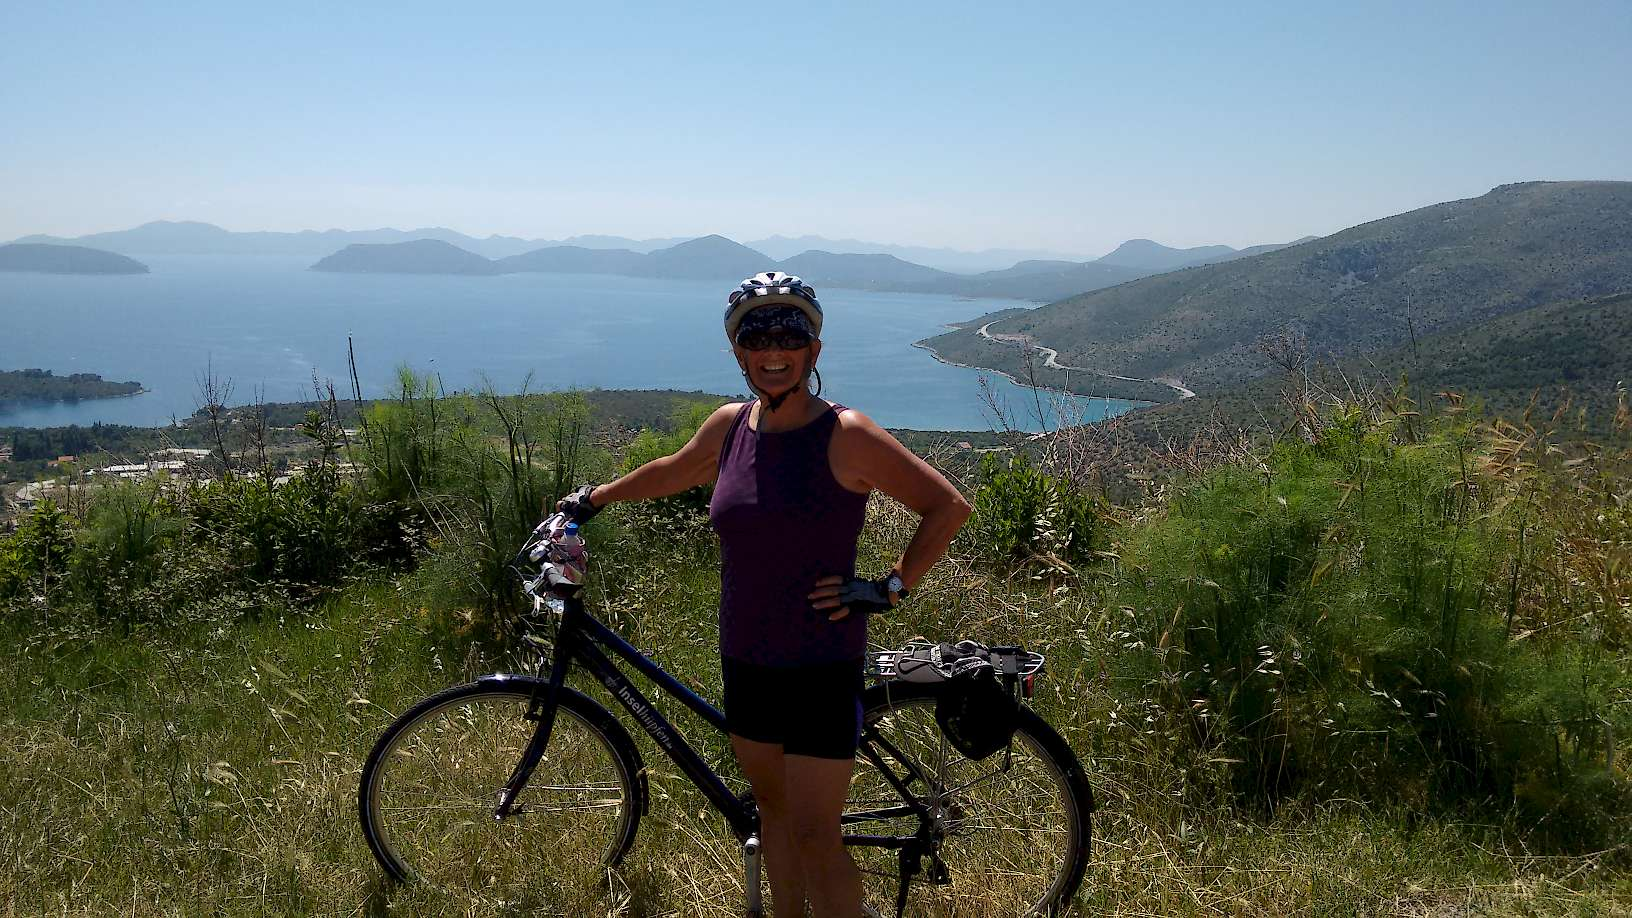 Beth posing for a picture overlooking the Adriatic Sea.